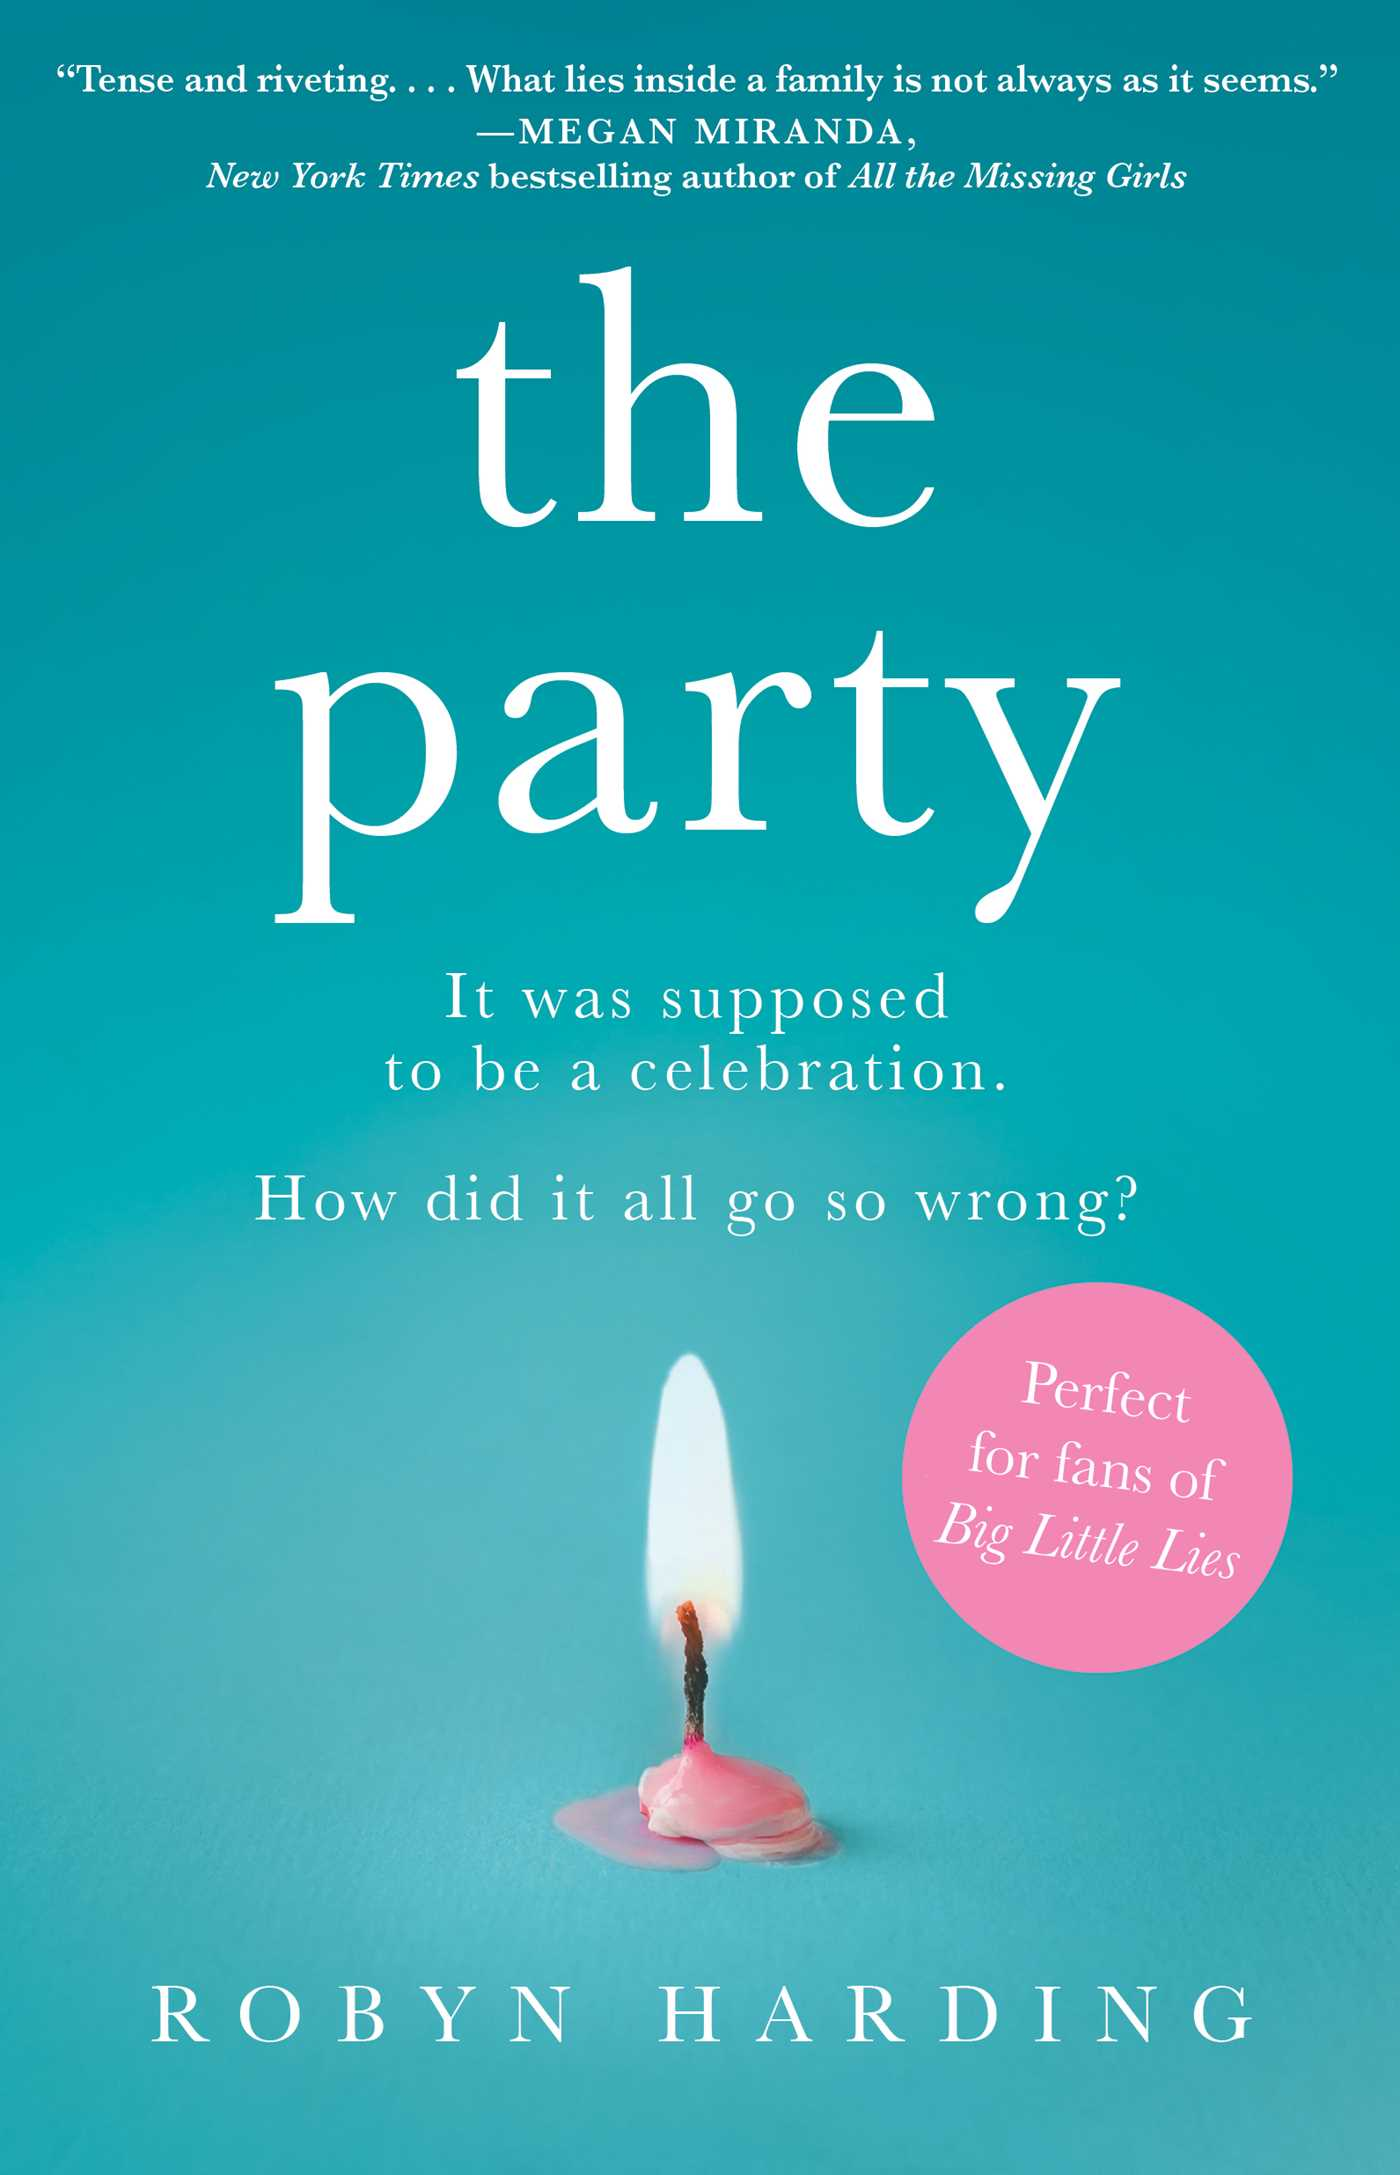 The Party | Book by Robyn Harding | Official Publisher ...